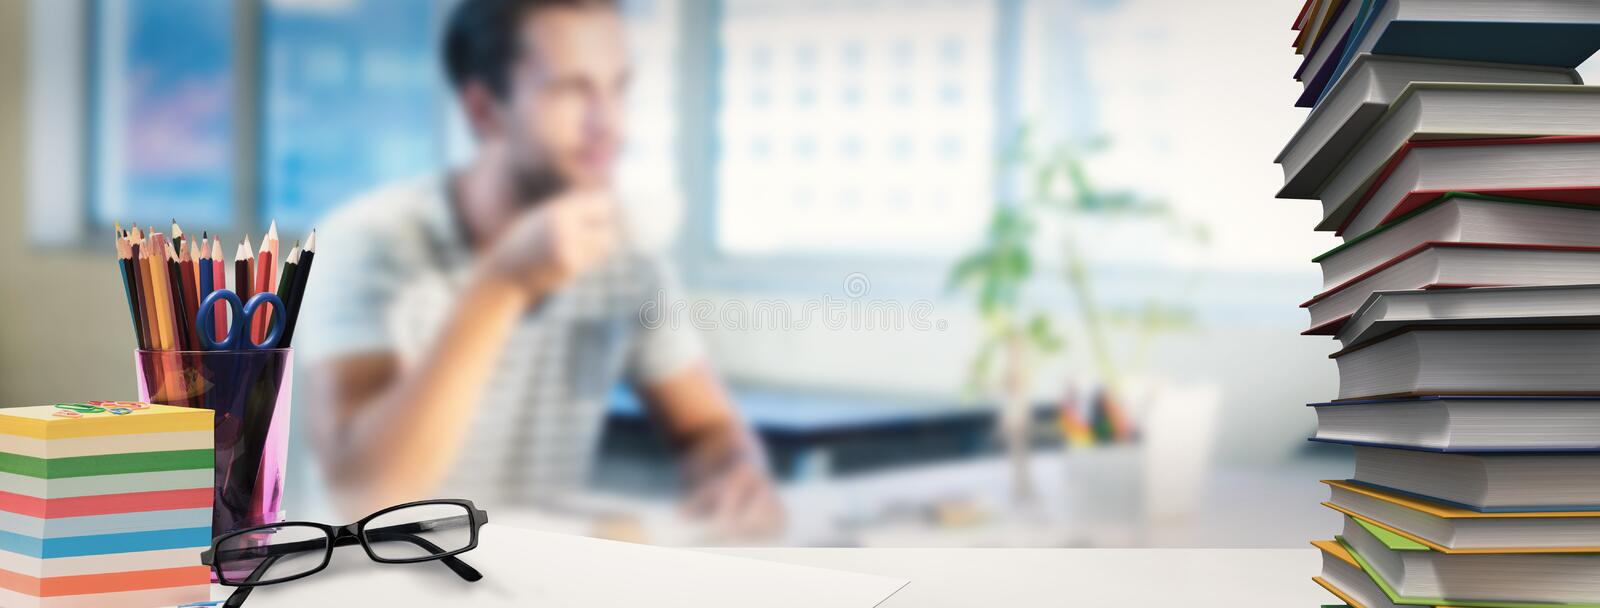 Composite image of students desk royalty free stock photography